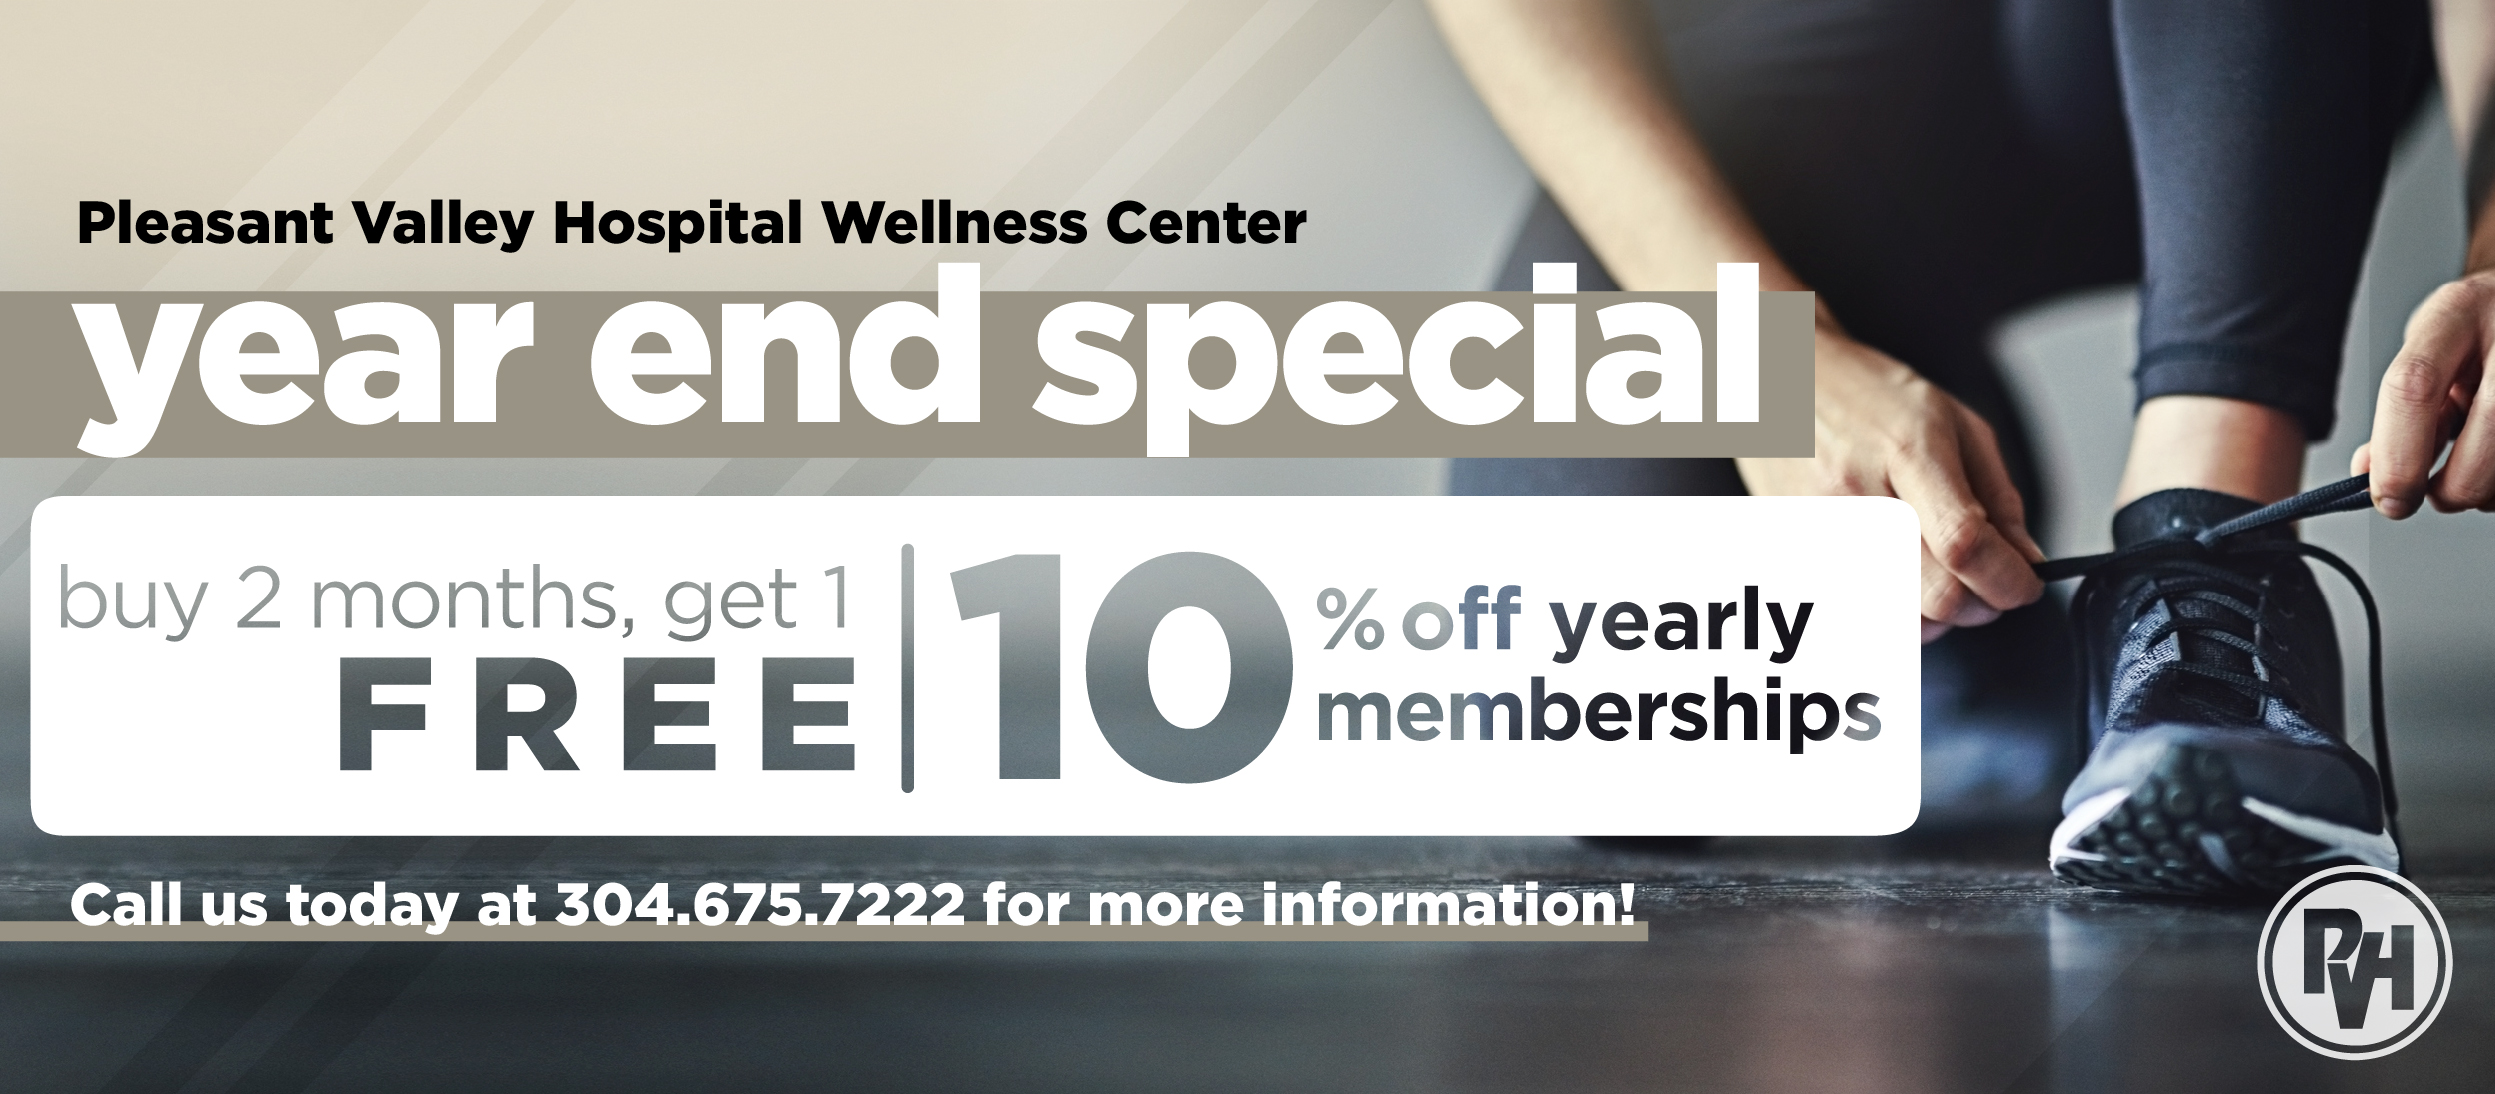 Pleasant Valley Hospital Wellness Center year end special buy 2 months, get 1 month free or 10% off yearly memberships | Call us today at 304.675.7222 for more information!